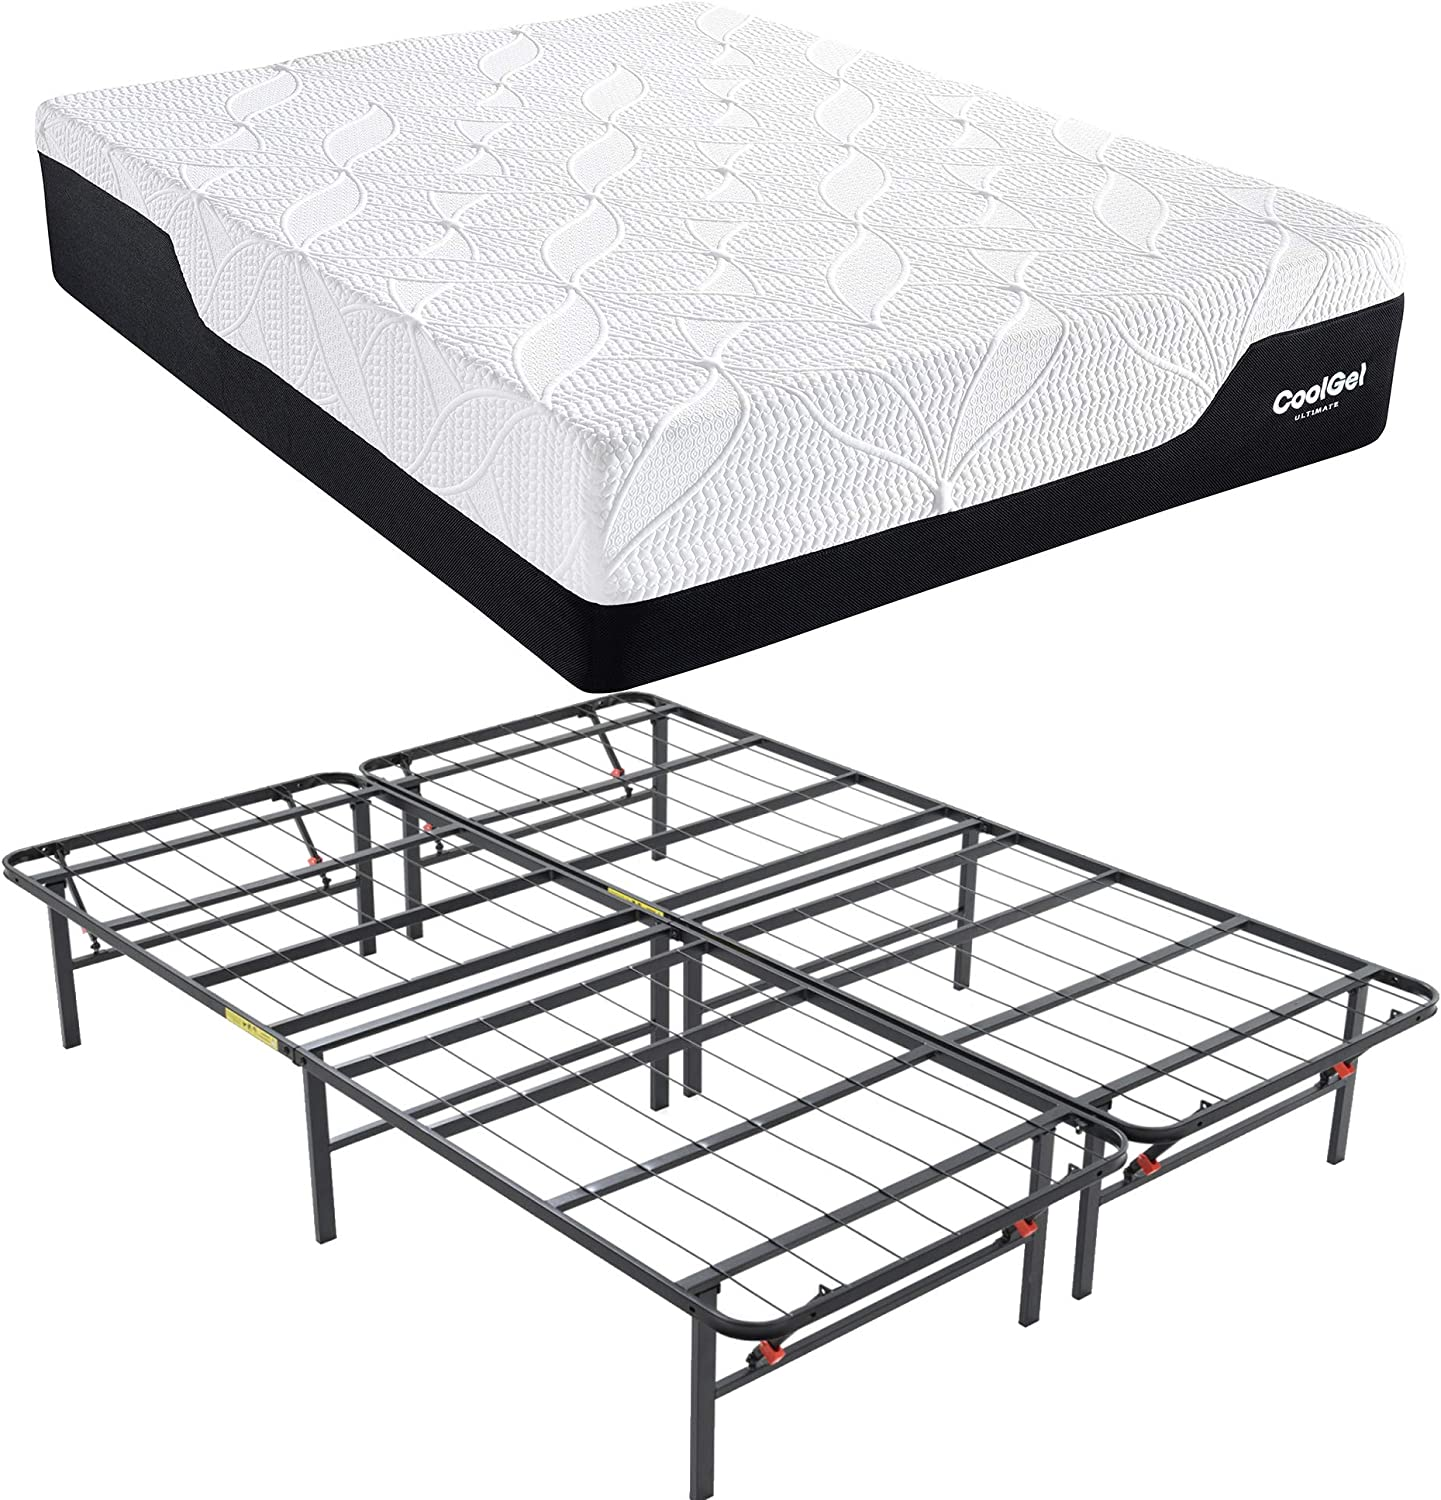 Classic Brands Cool Gel 2.0 Ultimate Gel Memory Foam 14-Inch Mattress with Hercules Heavy-Duty 14-Inch Platform Metal Bed Frame and BONUS Pillow, Full